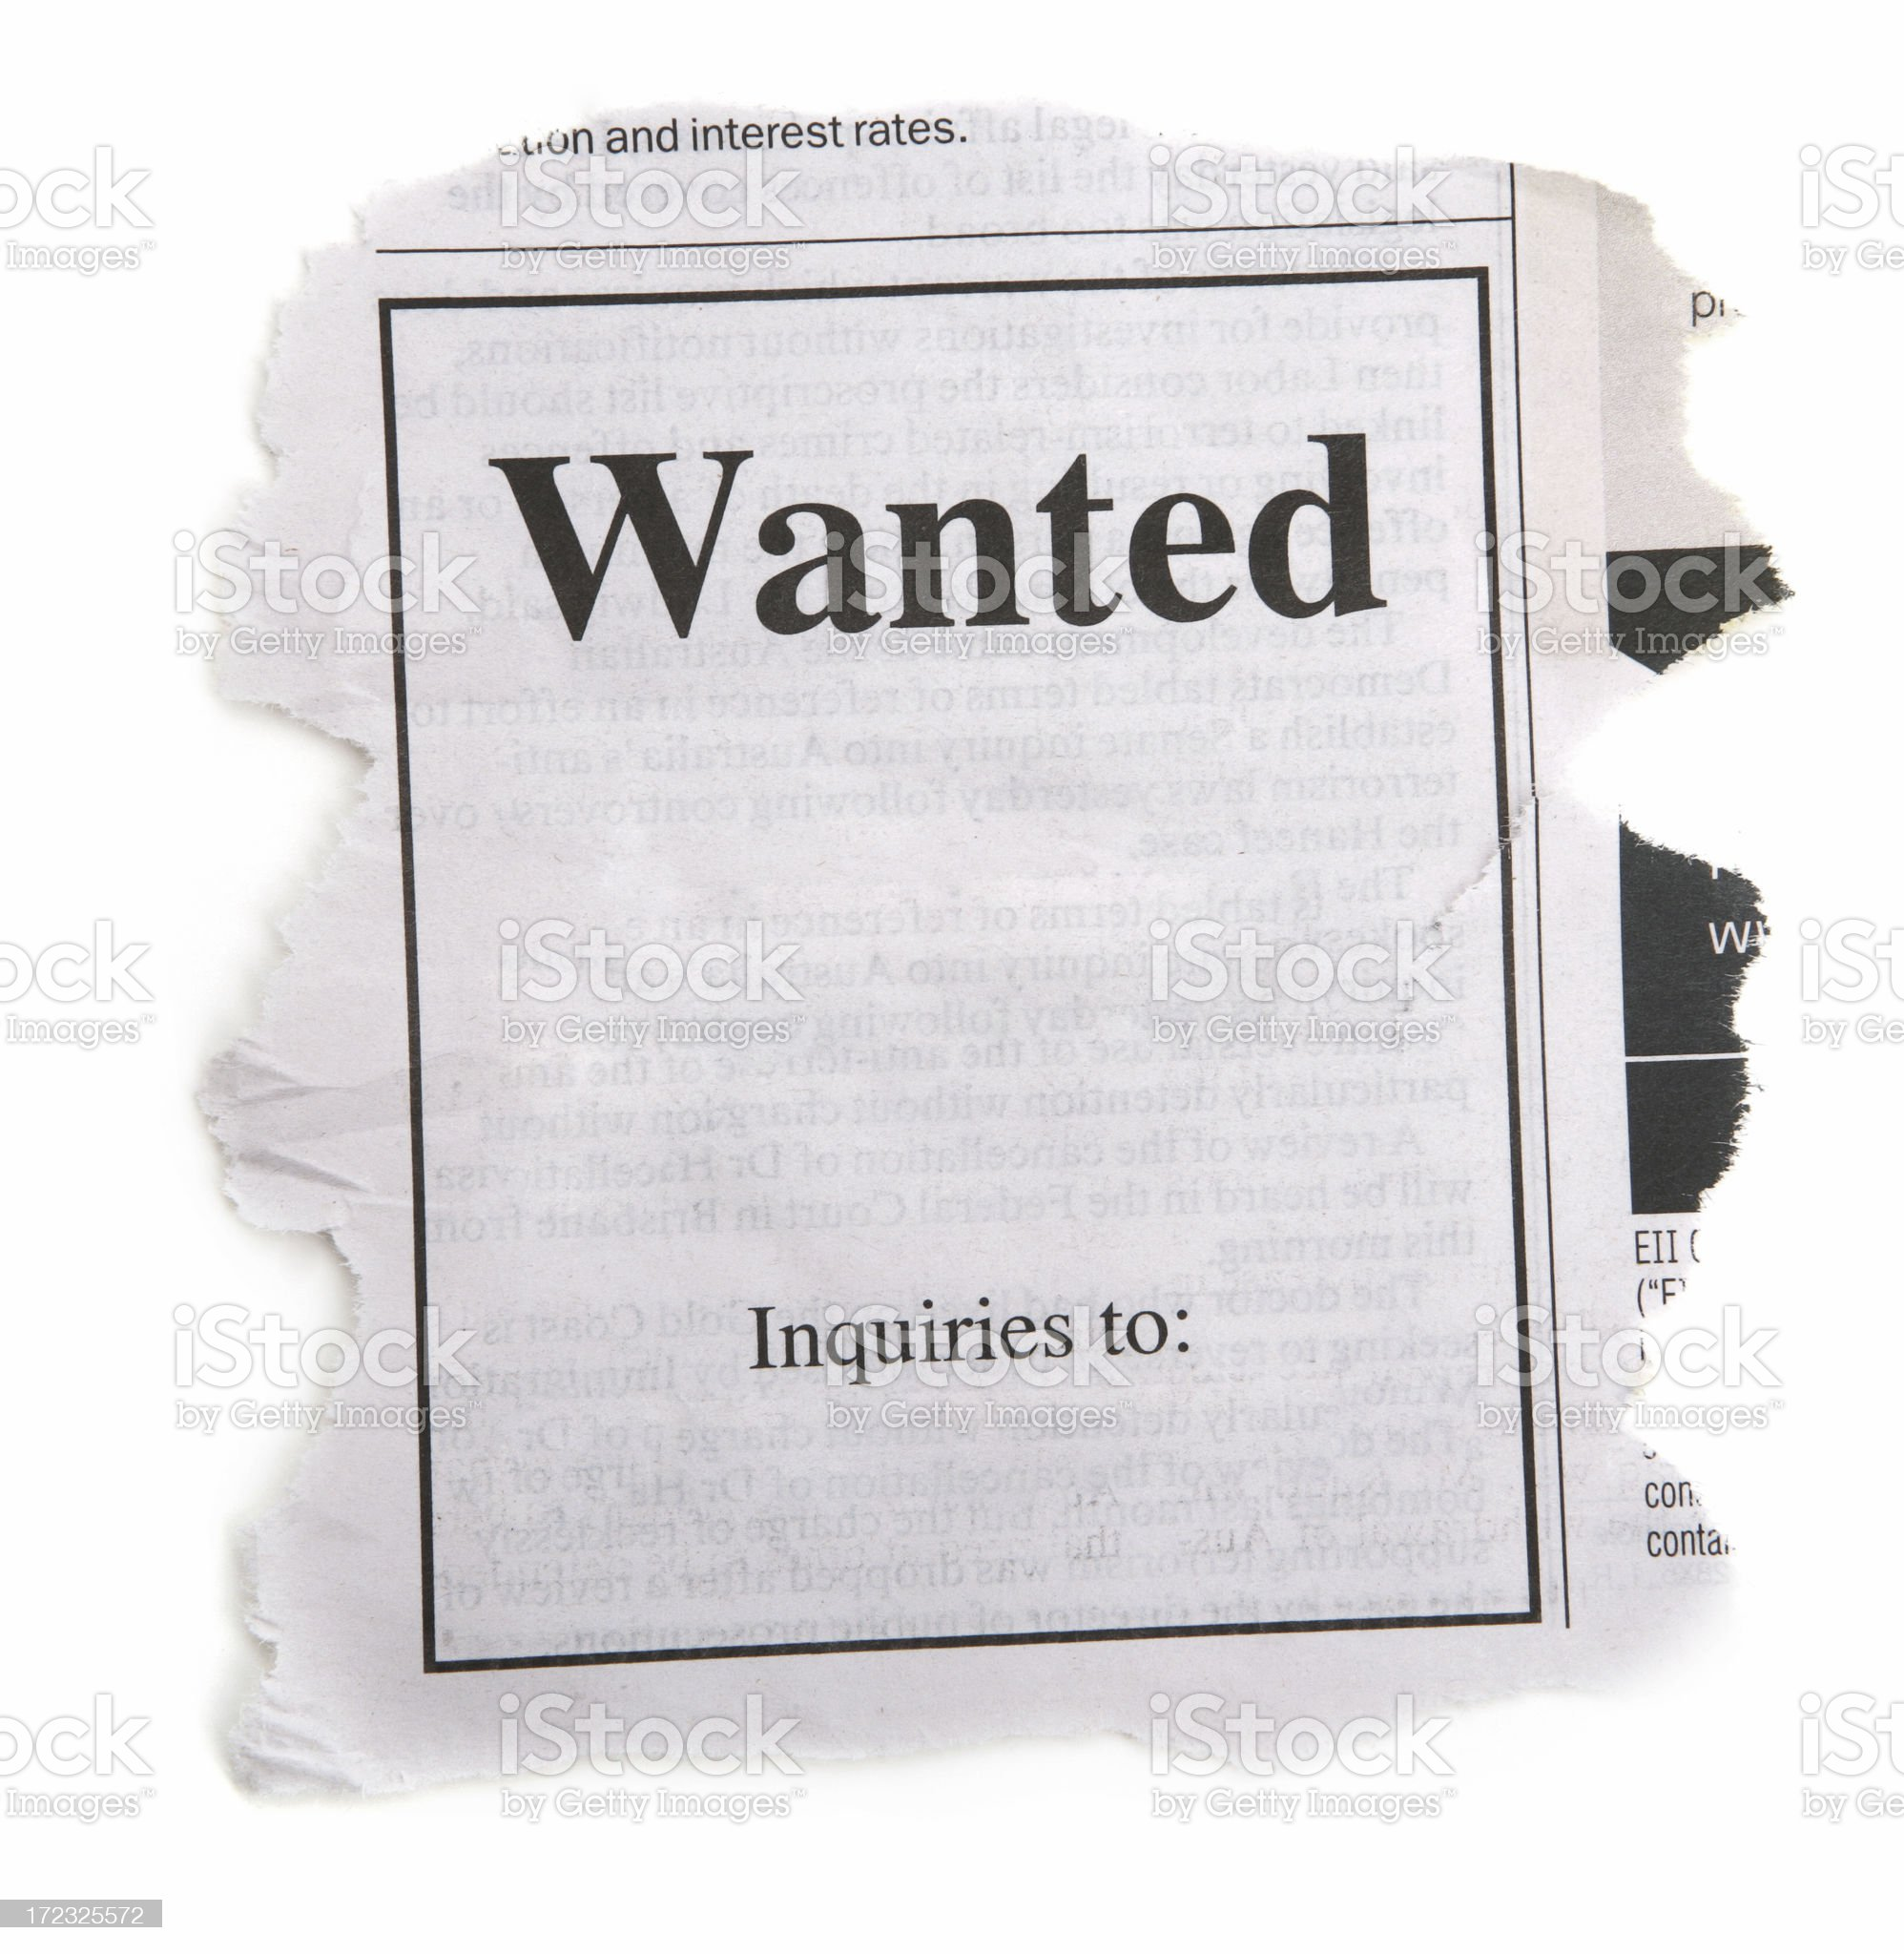 Wanted Ad from Newspaper royalty-free stock photo